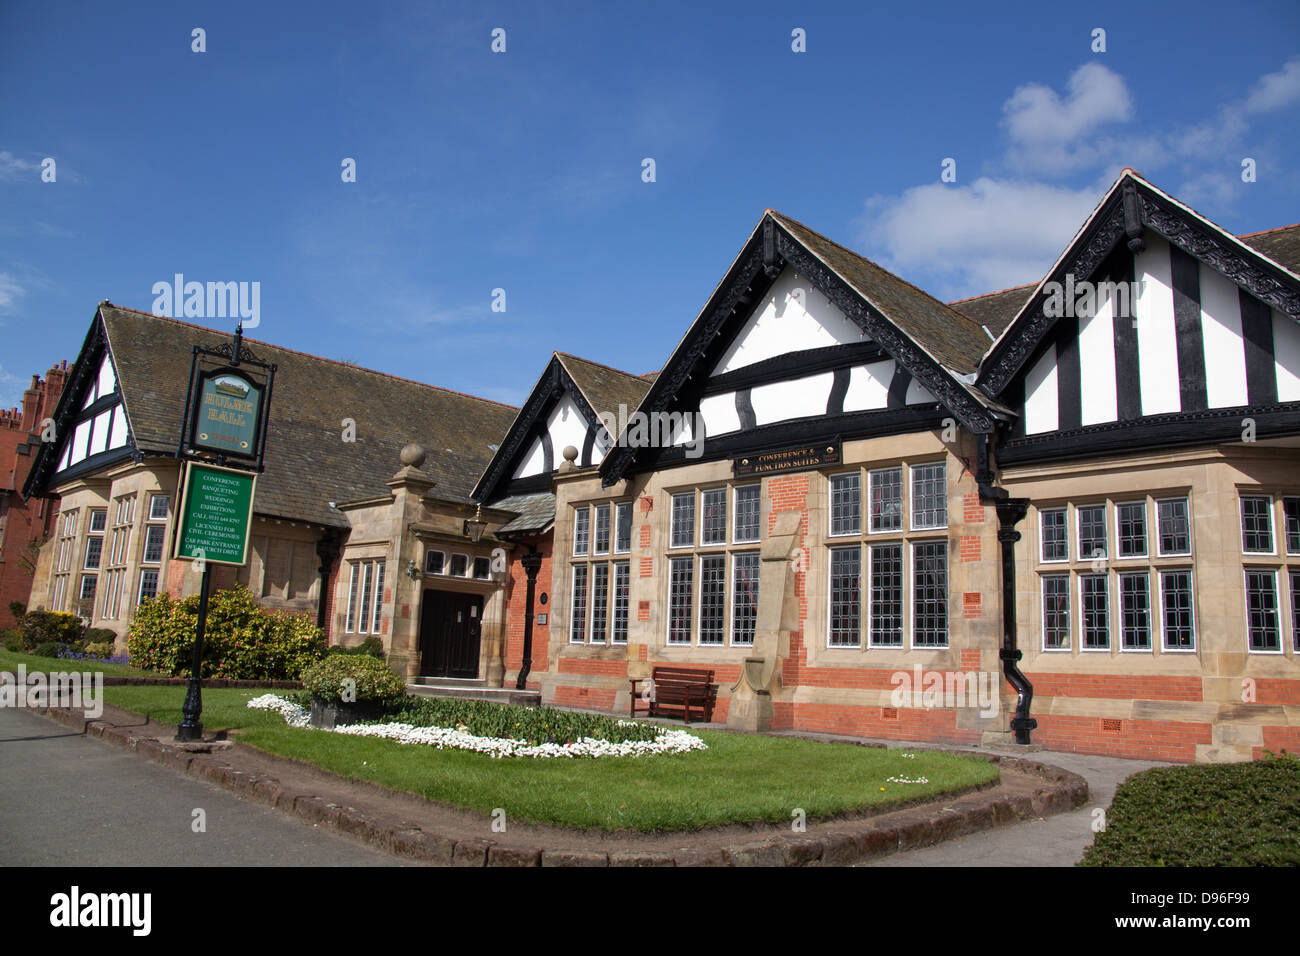 Village of Port Sunlight, England. The early 20th century William and Segar Owen designed Hulme Hall. - Stock Image